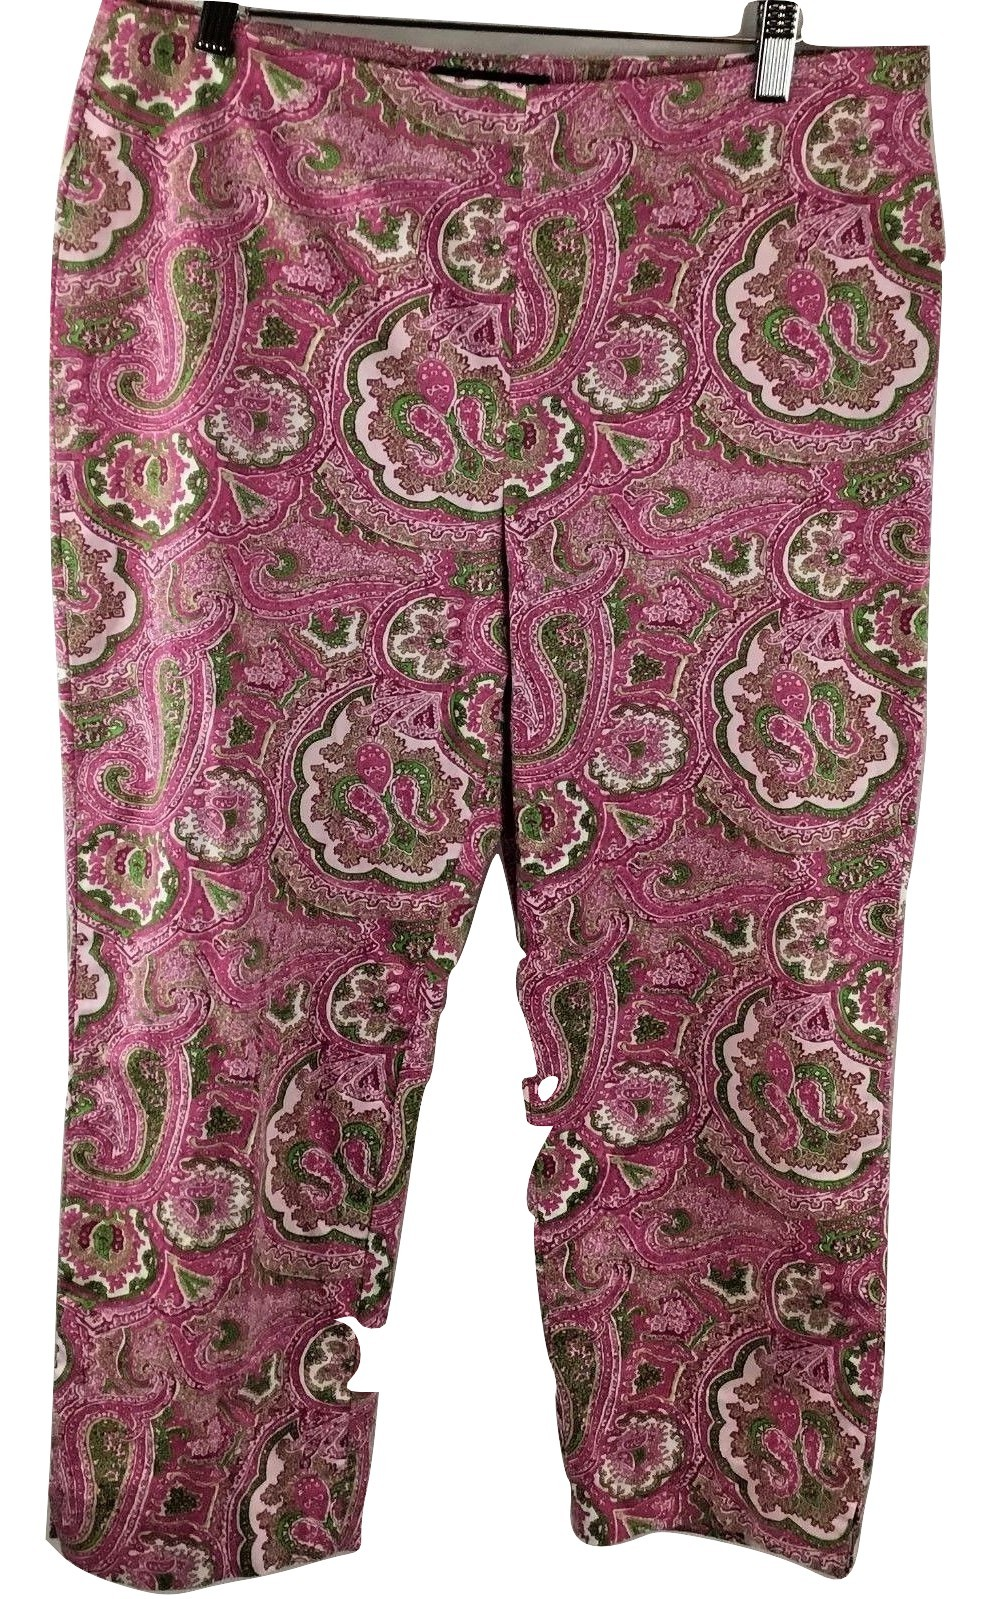 Primary image for Talbots Ladies Classic Side Zip Pink Paisley Capri Stretch Size 10 Petite